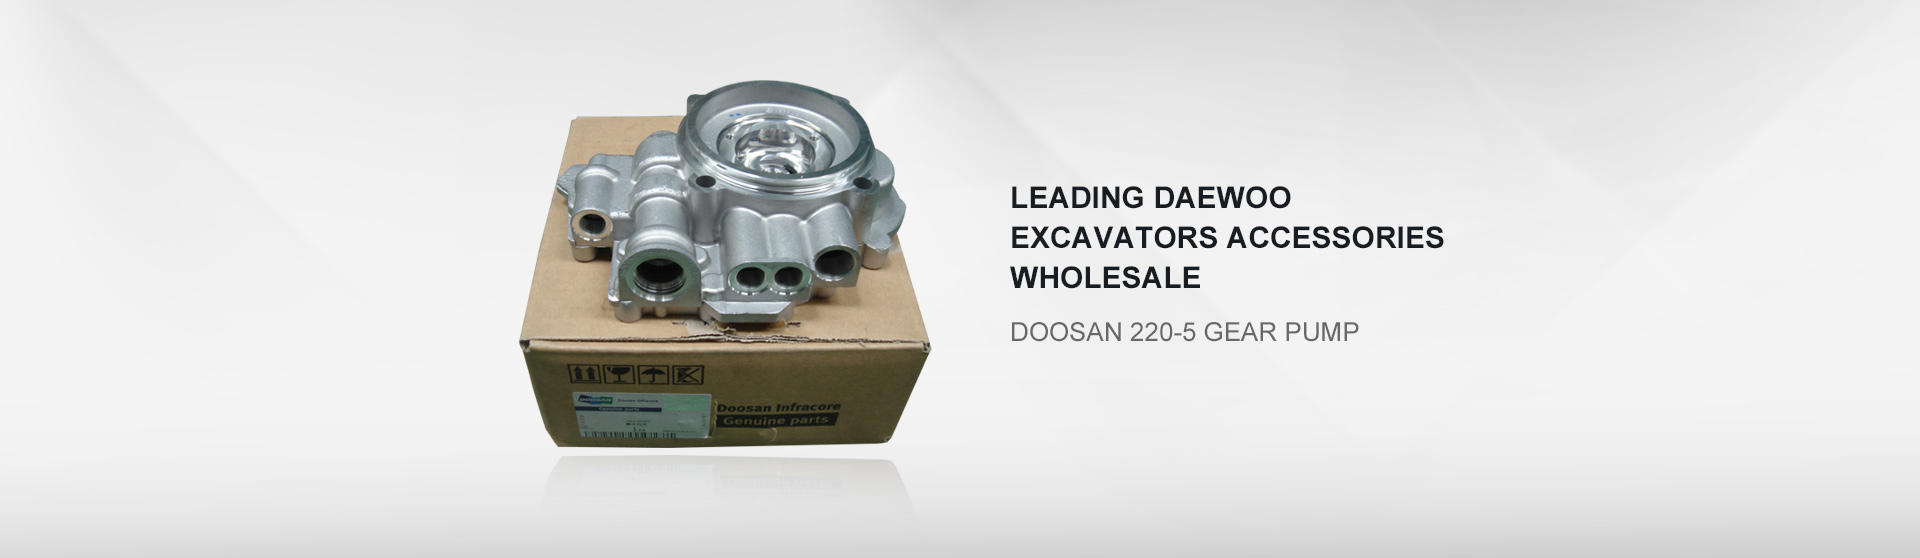 Doosan 220-5 gear pump